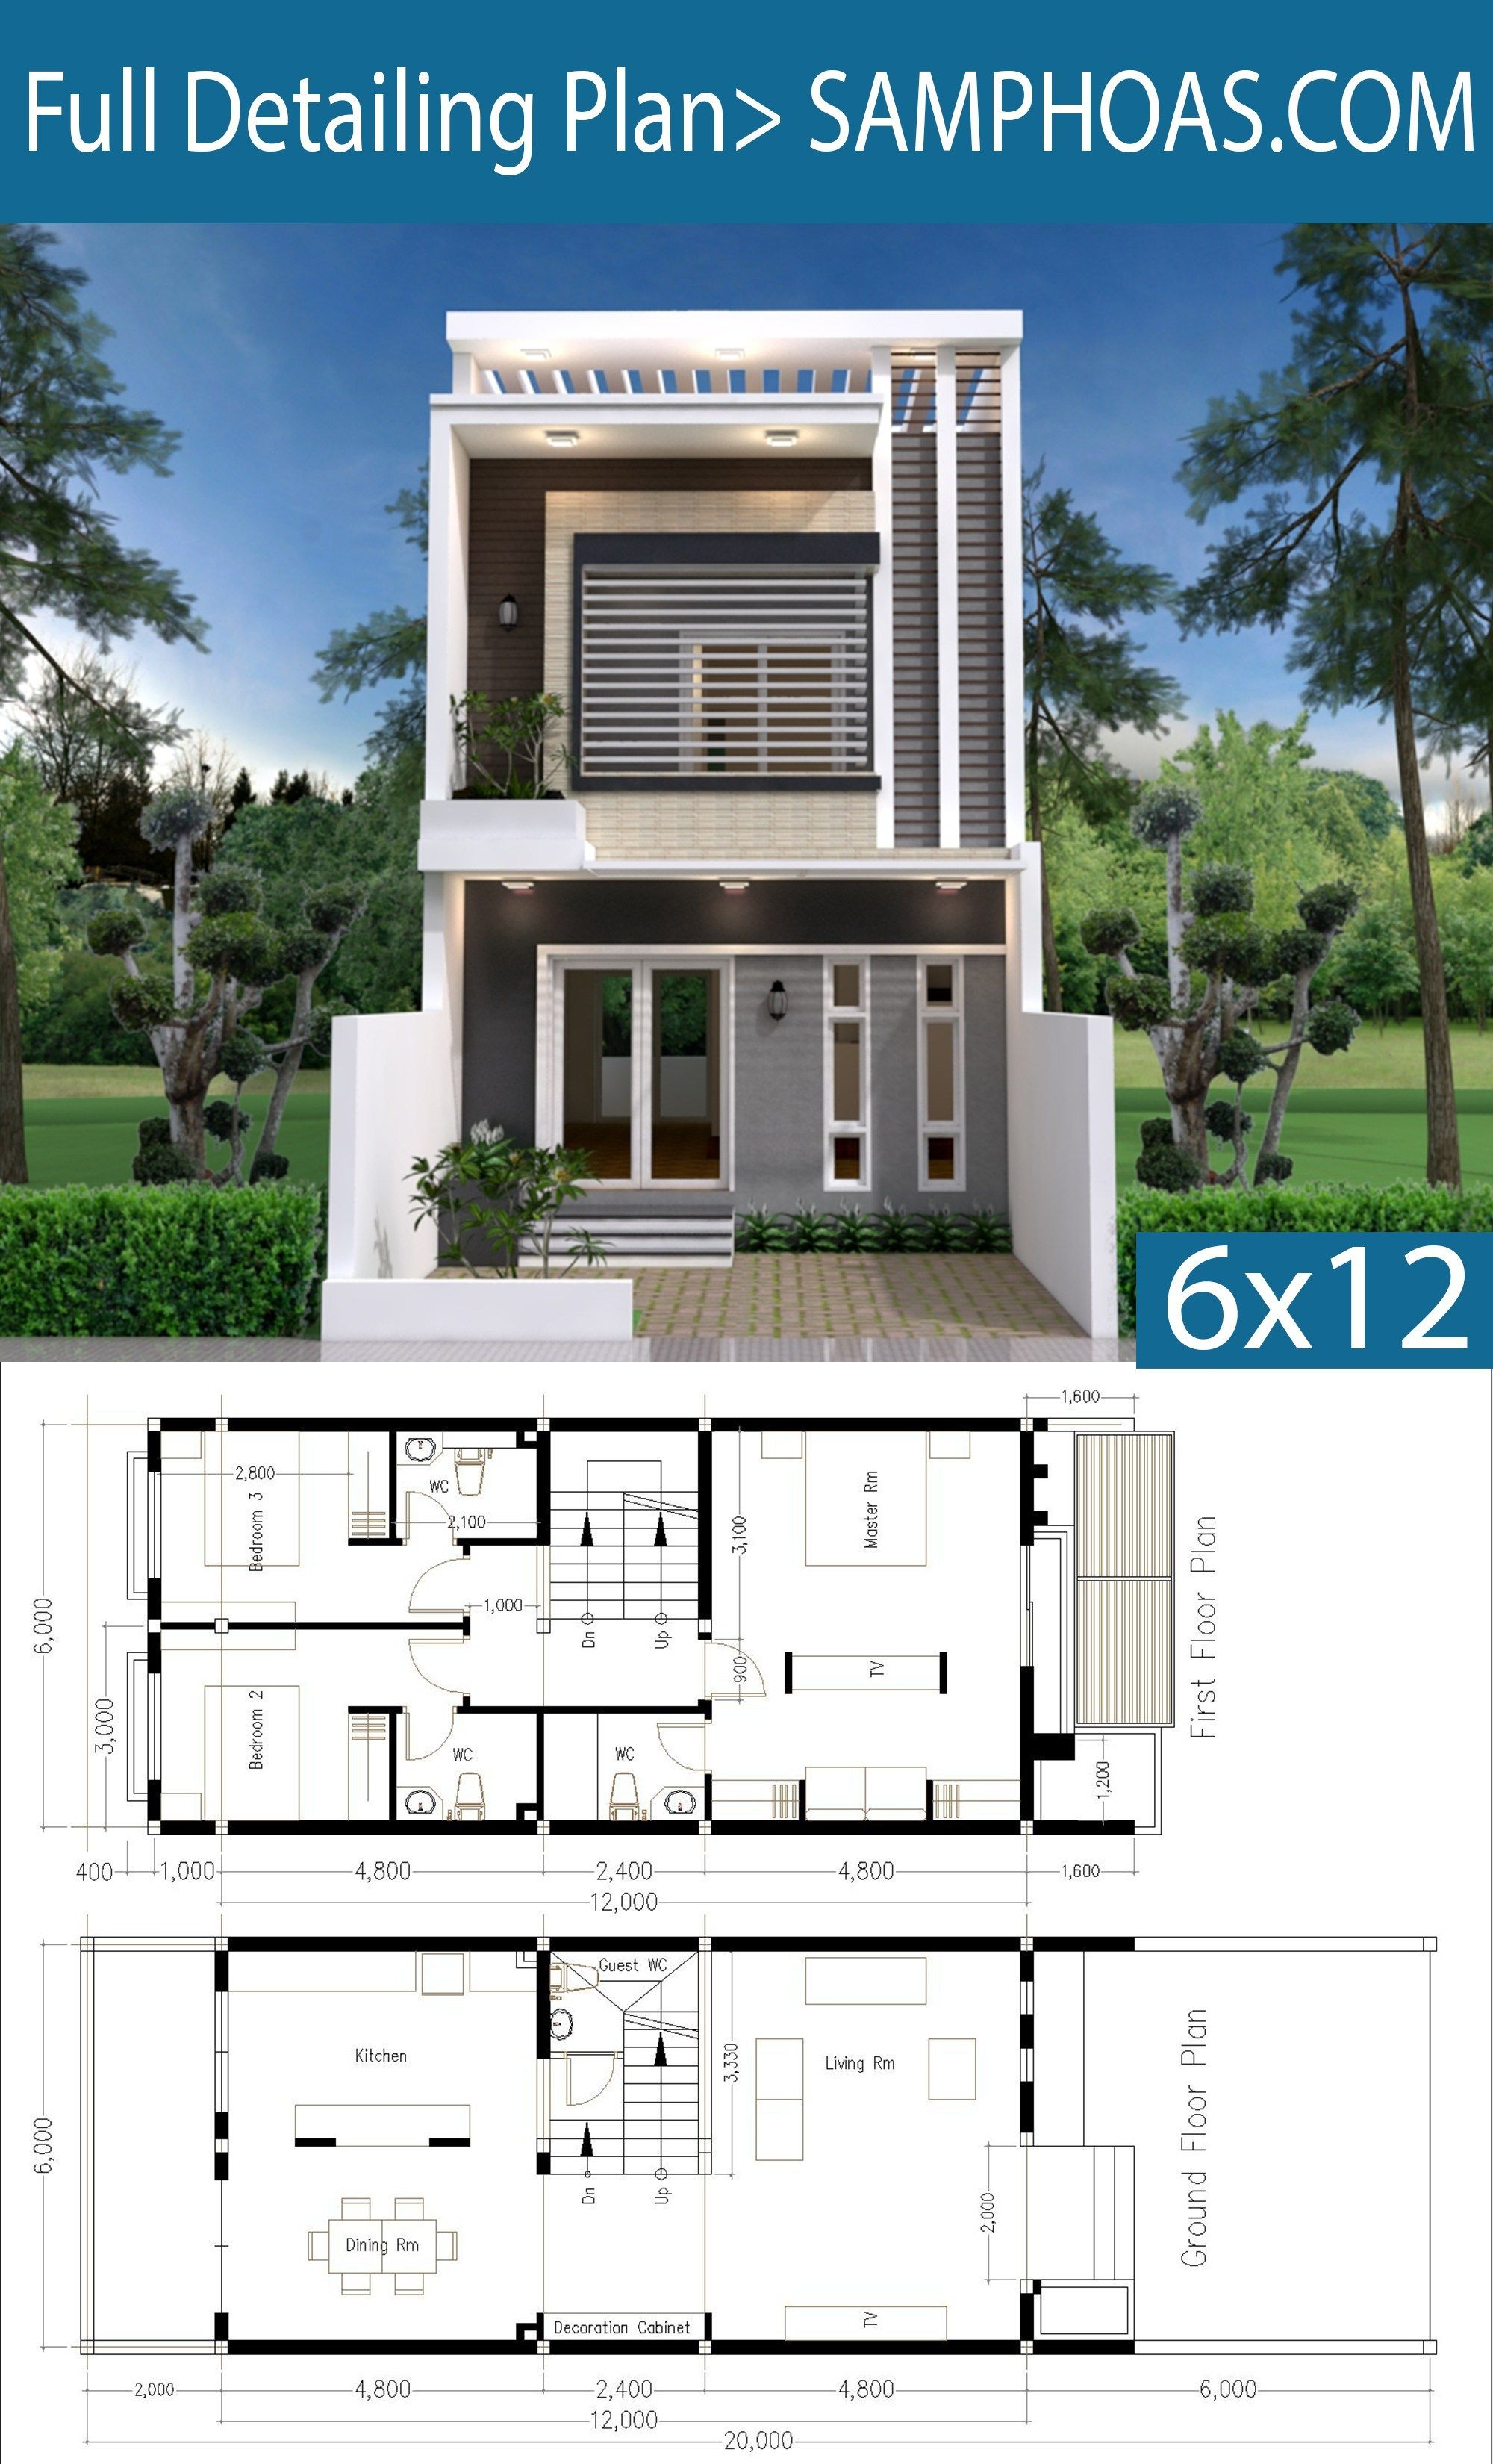 Modern Home Plan 6x12m With 3 Bedroom Samphoas Plan Narrow House Plans Duplex House Plans Minimalist House Design